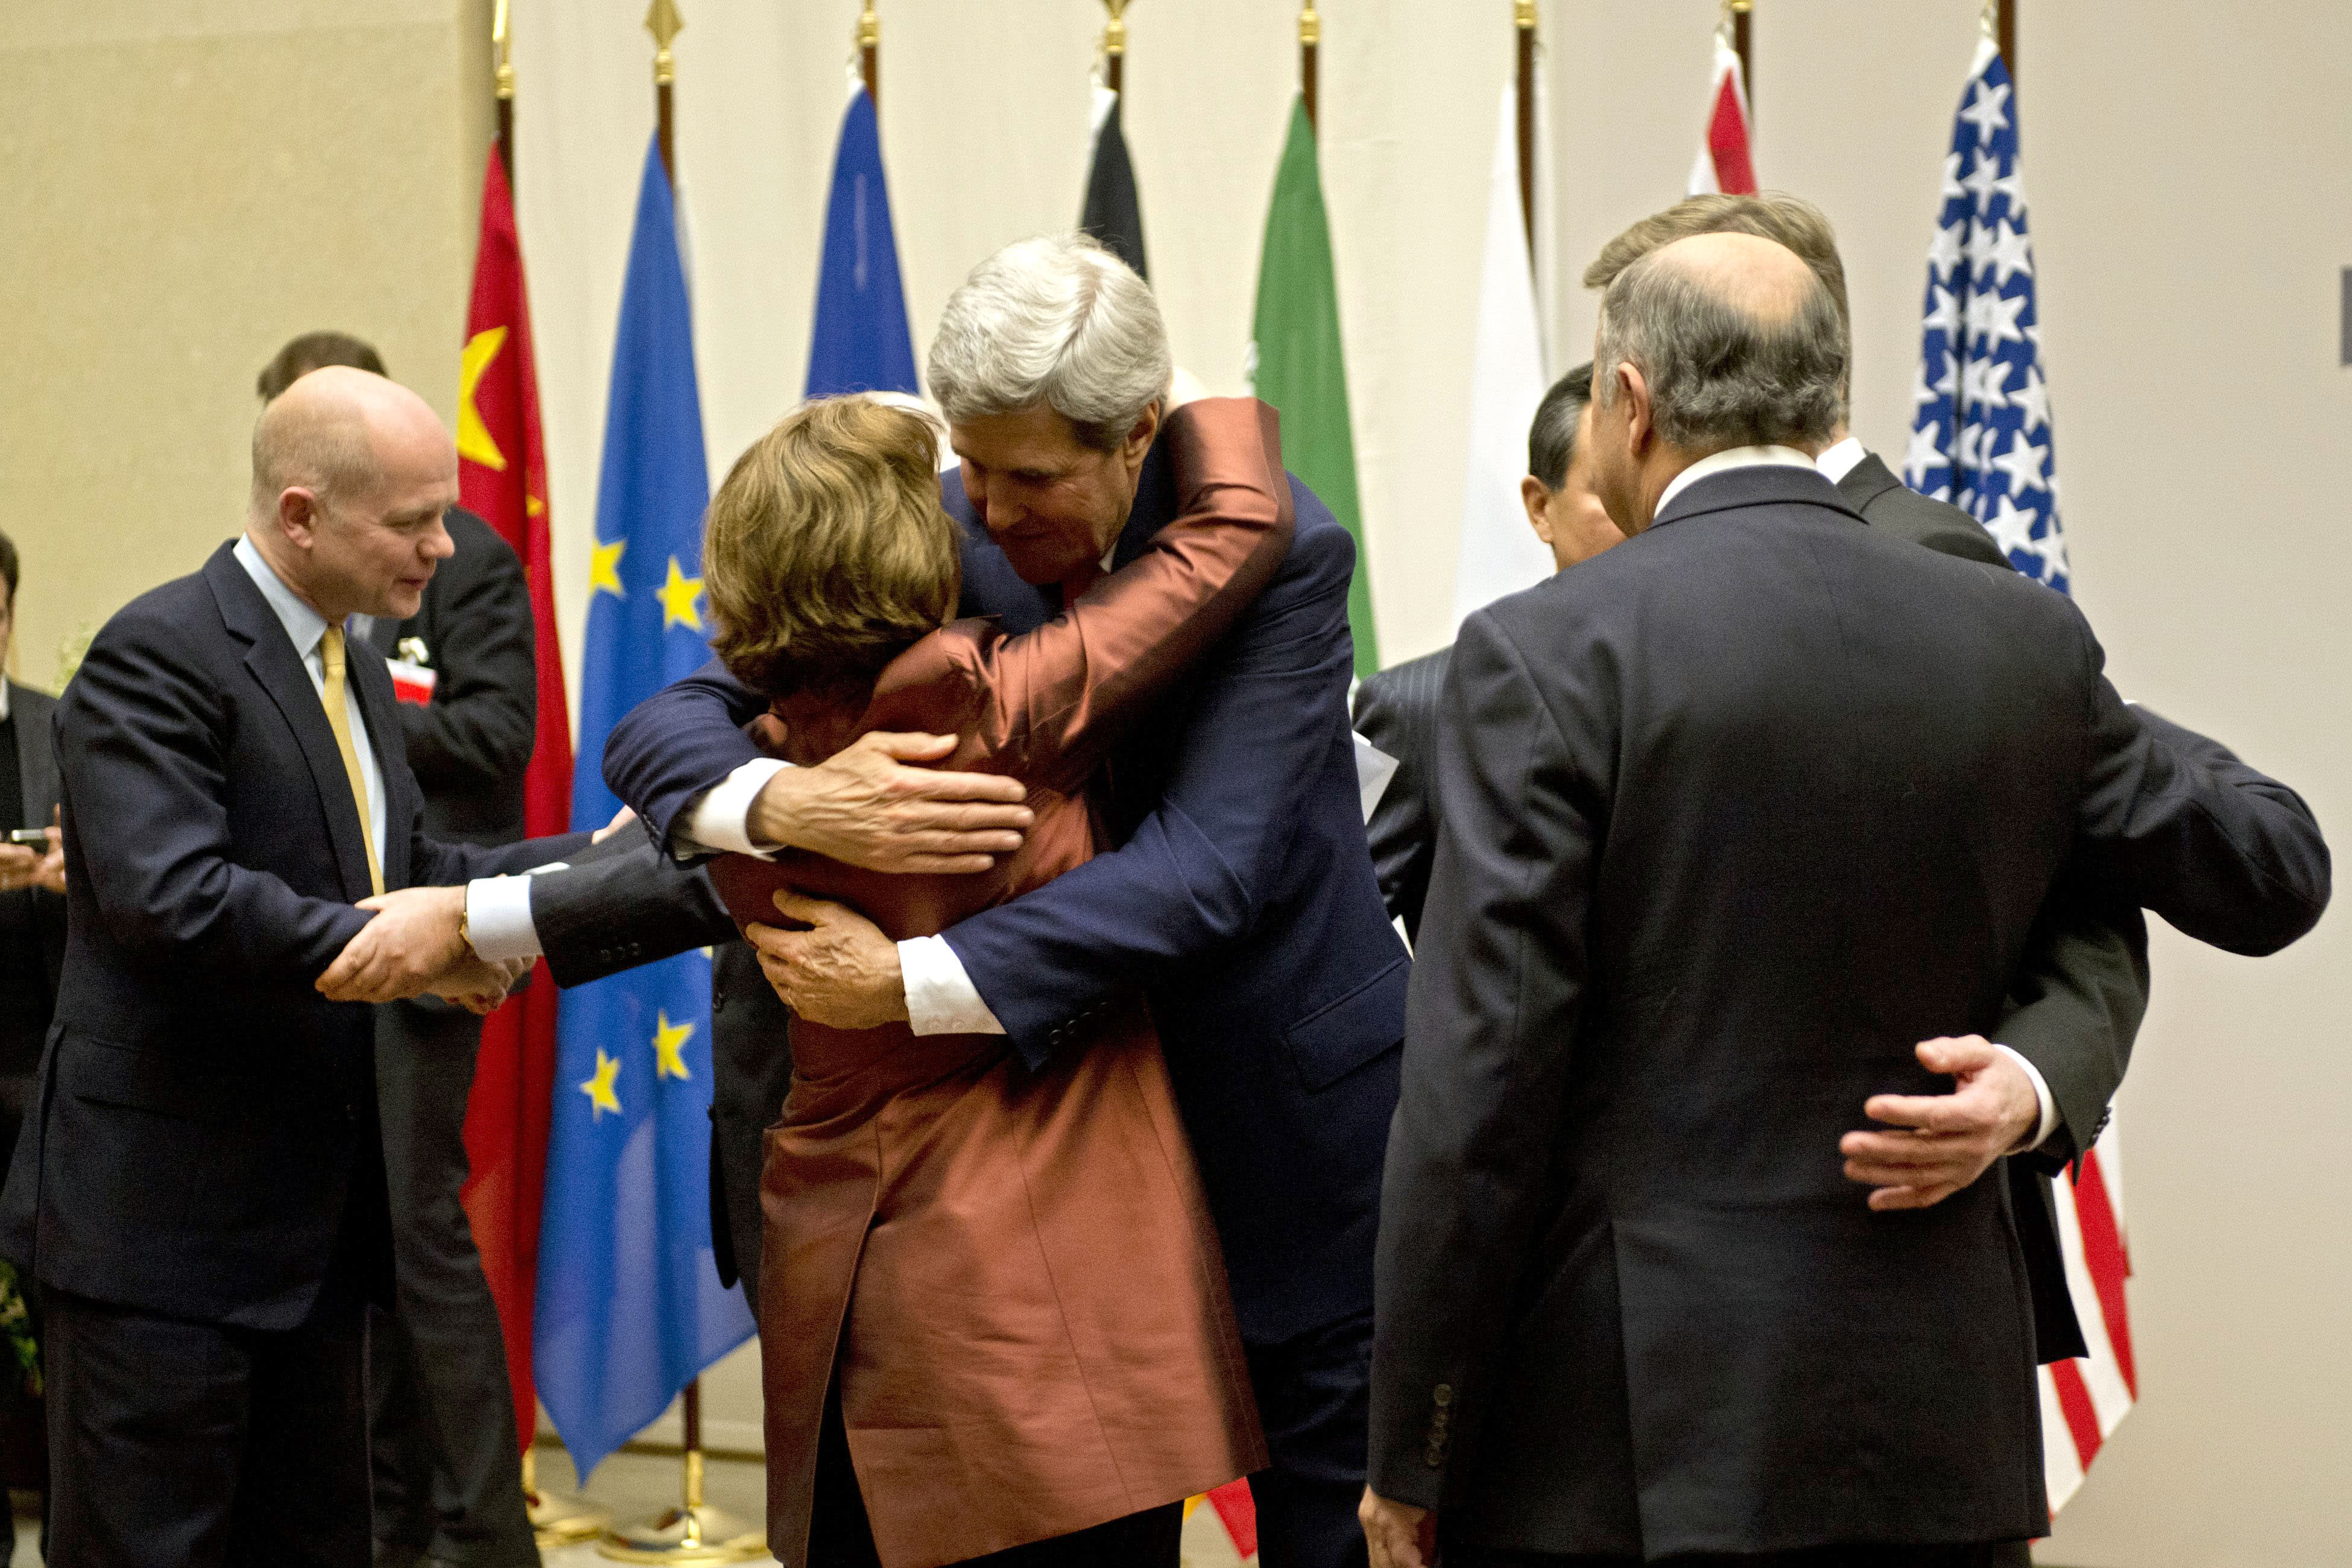 Obama Nuclear Deal Blocks Irans Path To Bomb